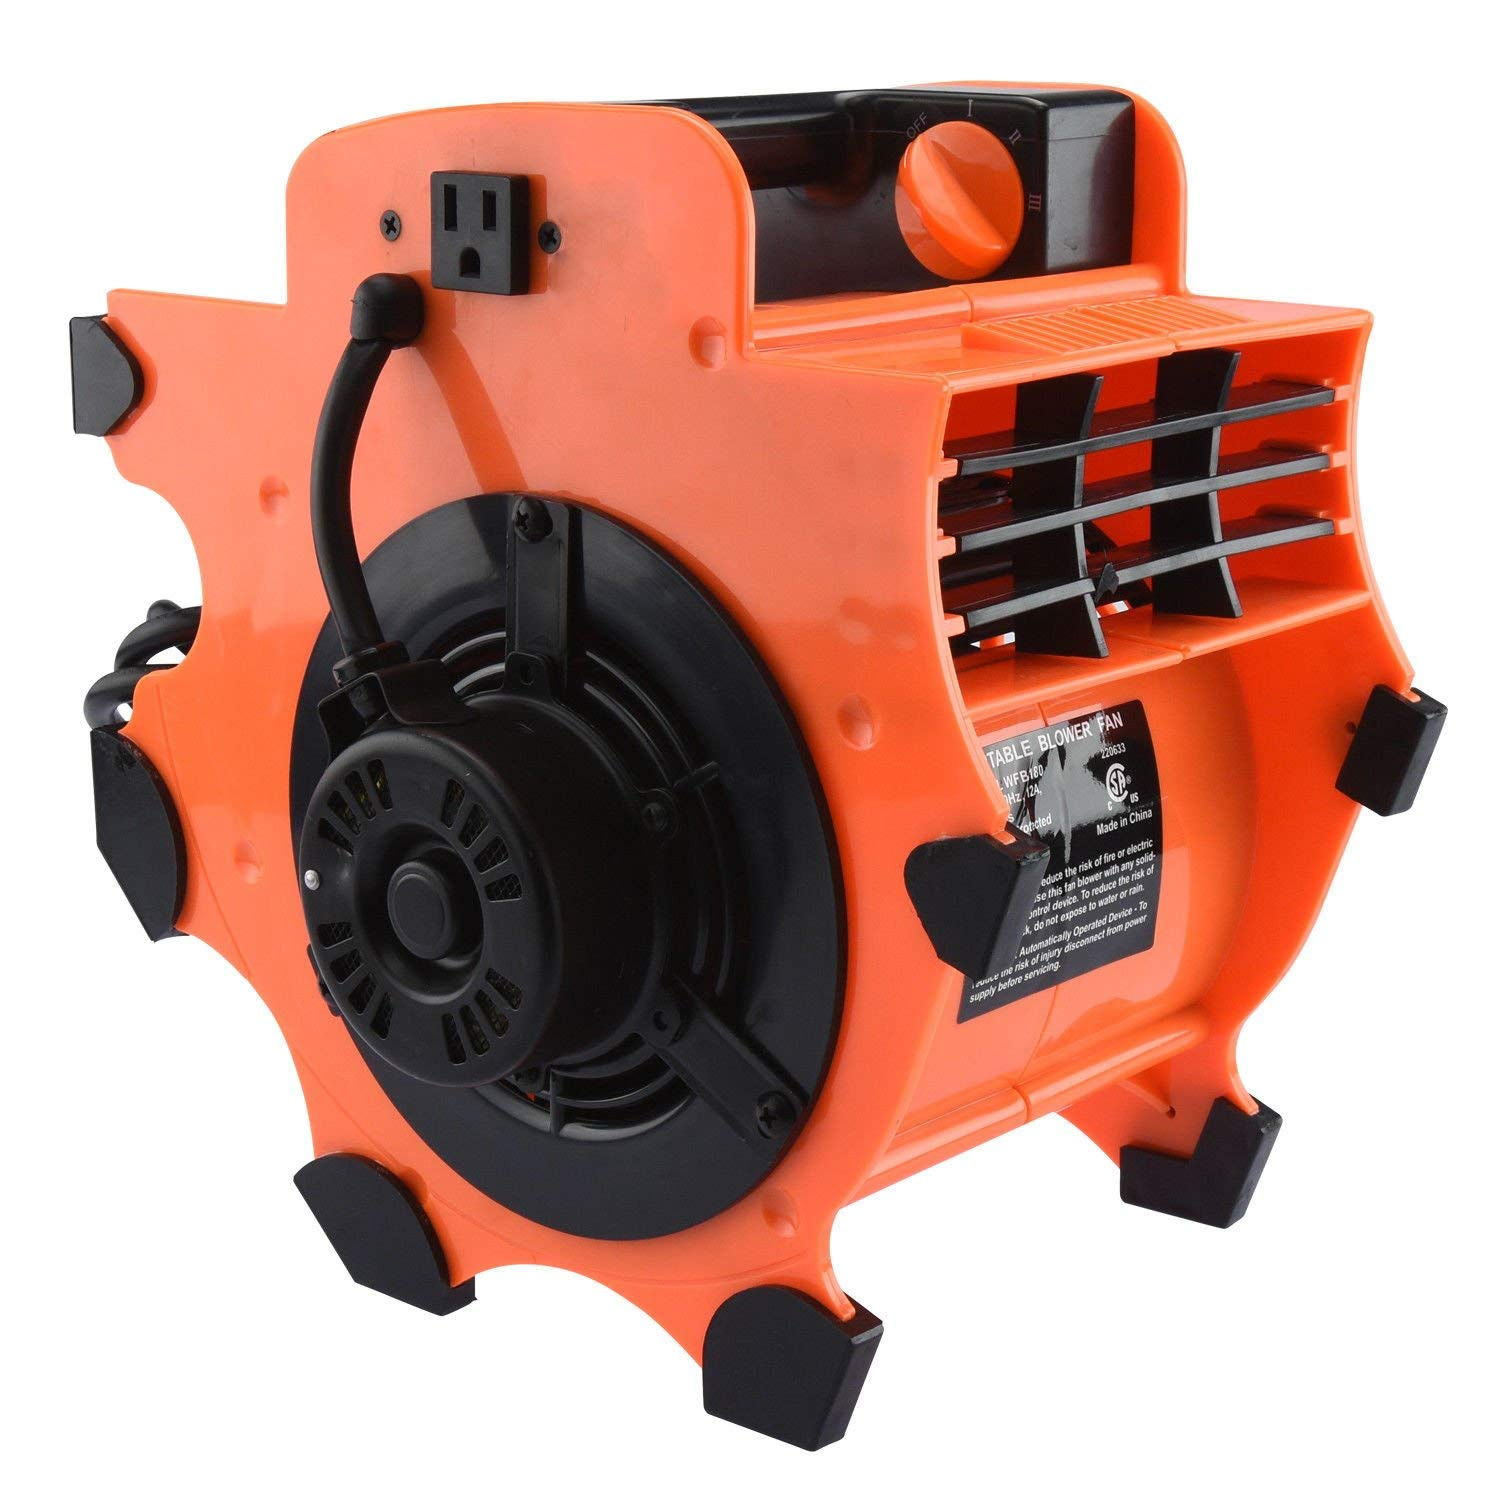 ESKALEX Industrial Air Mover | Fan Blower Floor Carpet Dryer Portable Lightweight And This Multi-Purpose Fan Blower is engineered for high volume air movement. Can be used to cool, ventilate